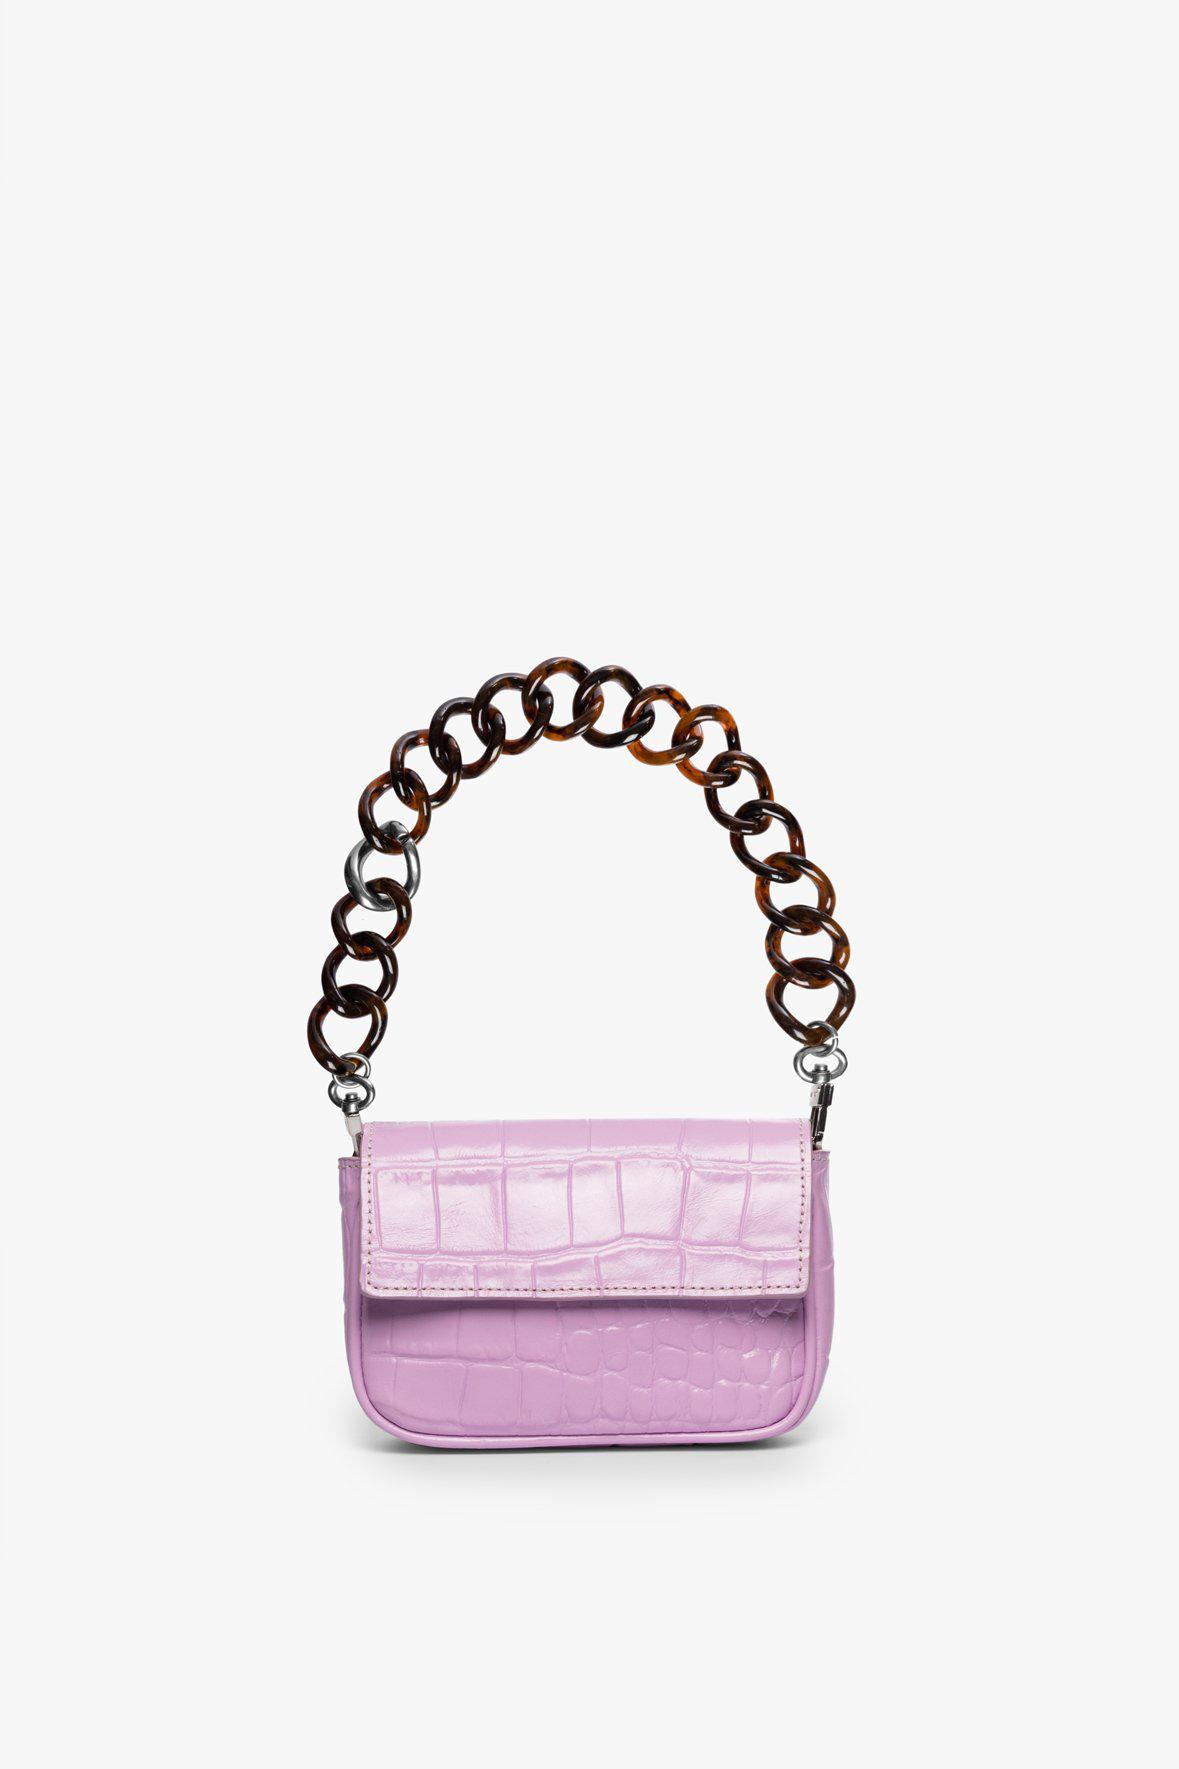 MINI TOMMY CHAIN BAG   LAVENDER CROC EMBOSSED